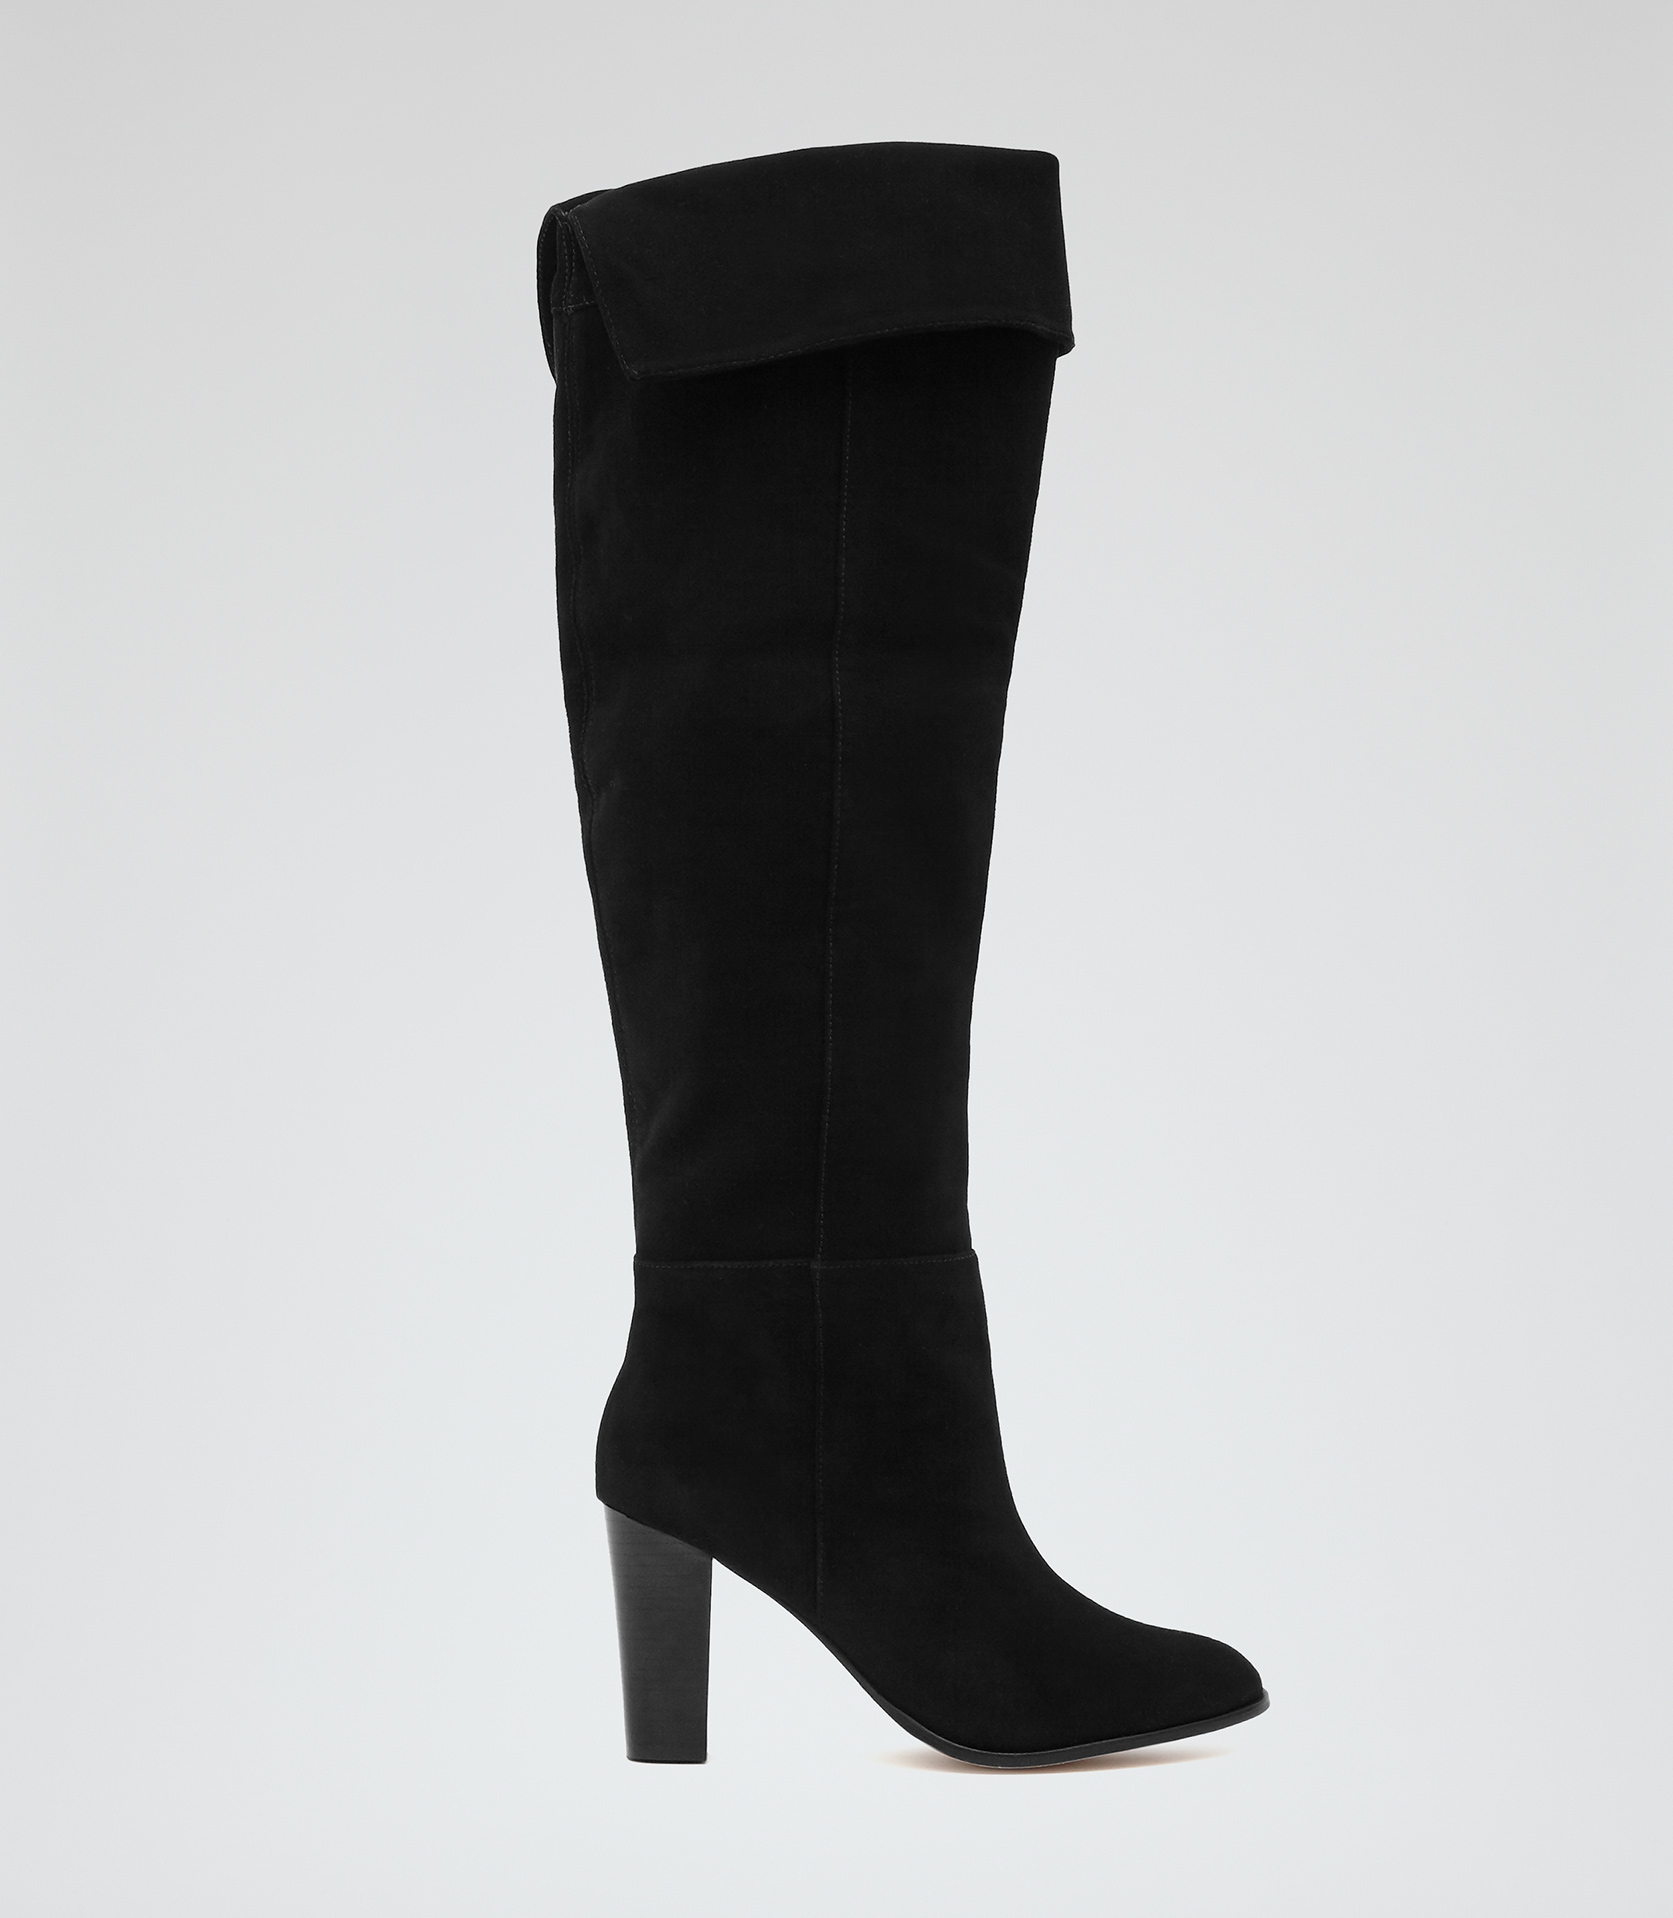 Reiss Vale Over-the-knee Suede Boots in Black | Lyst